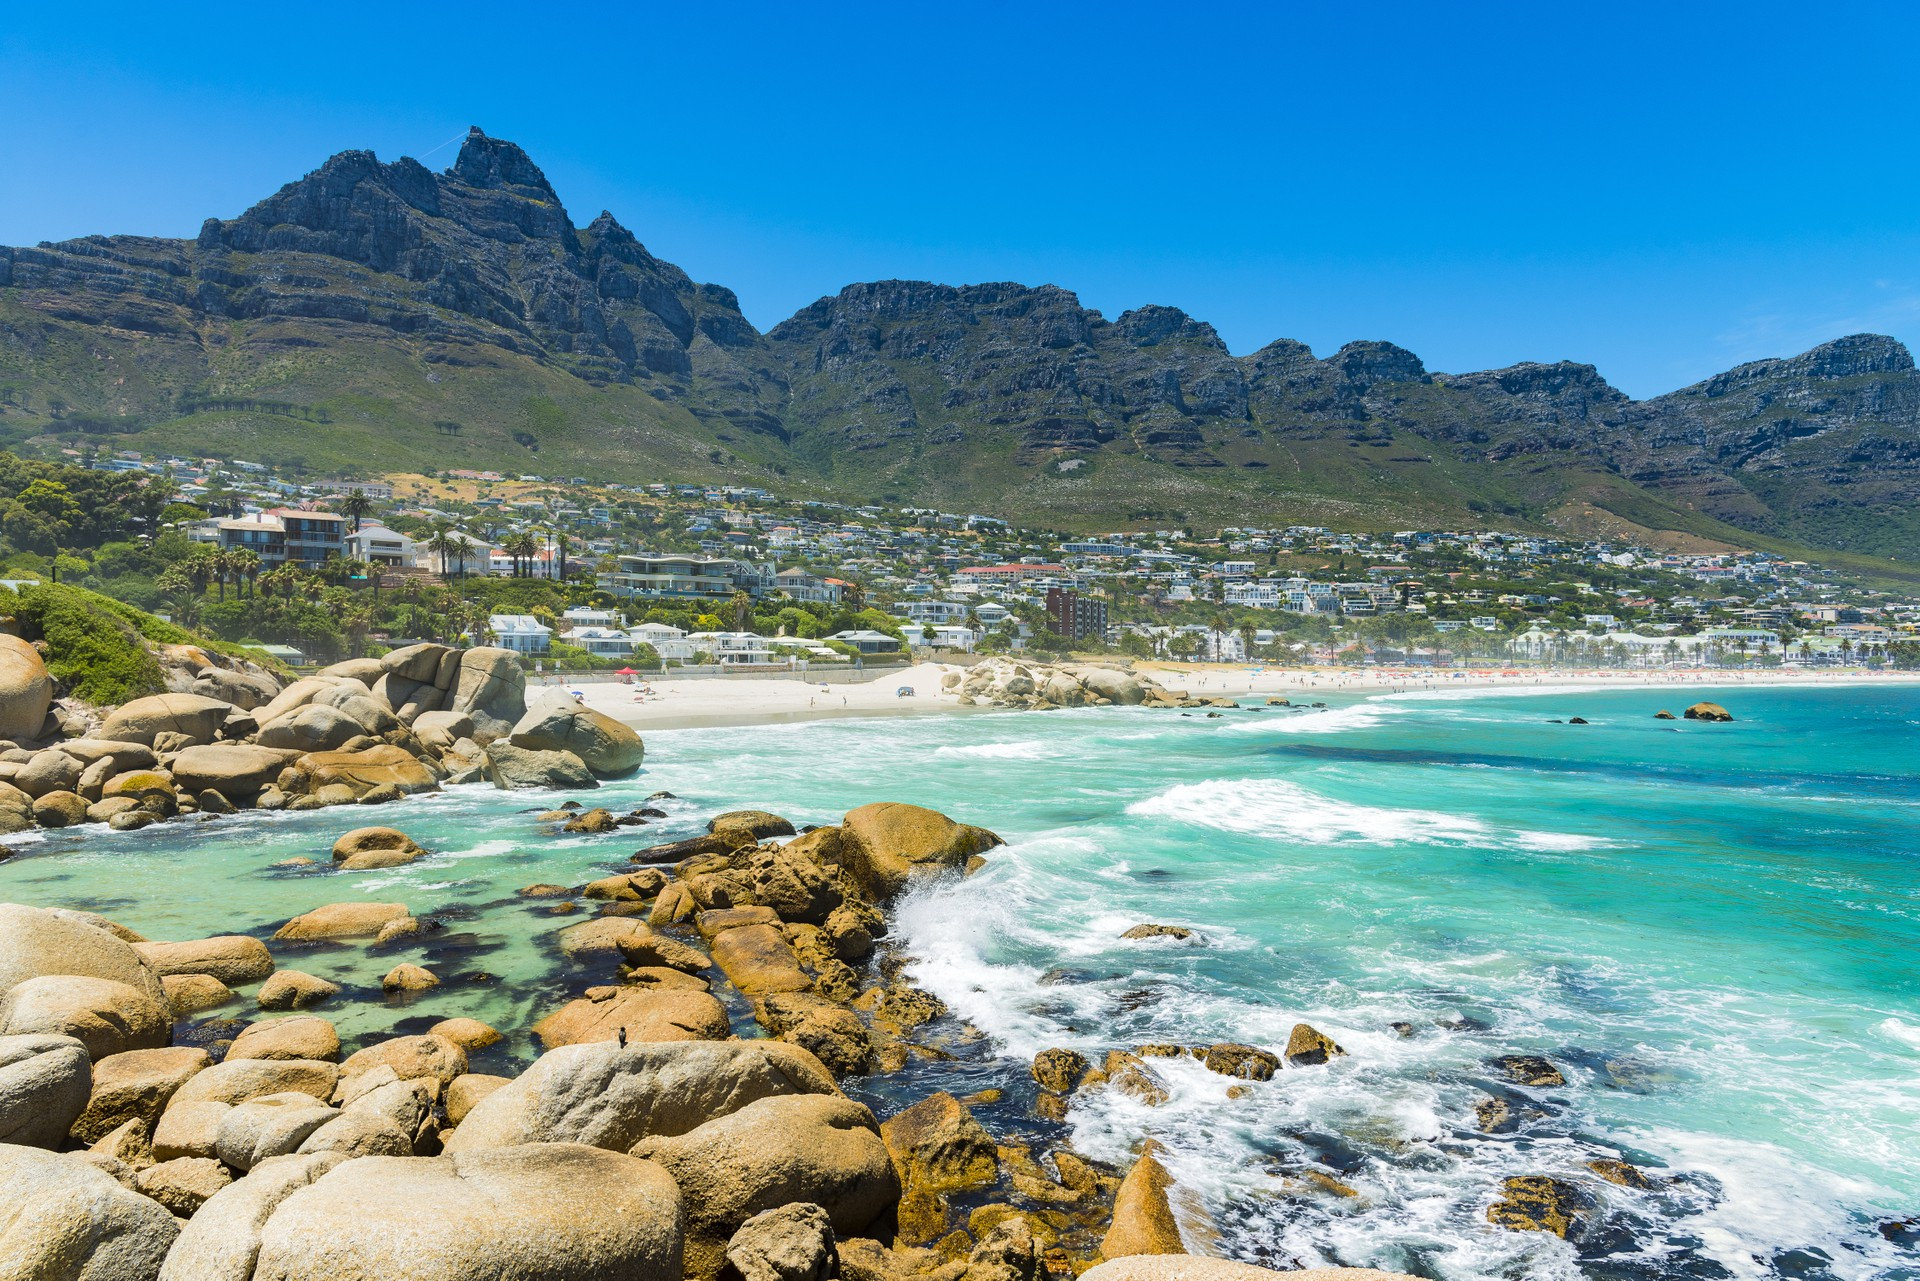 The turquoise waters of Camps Bay